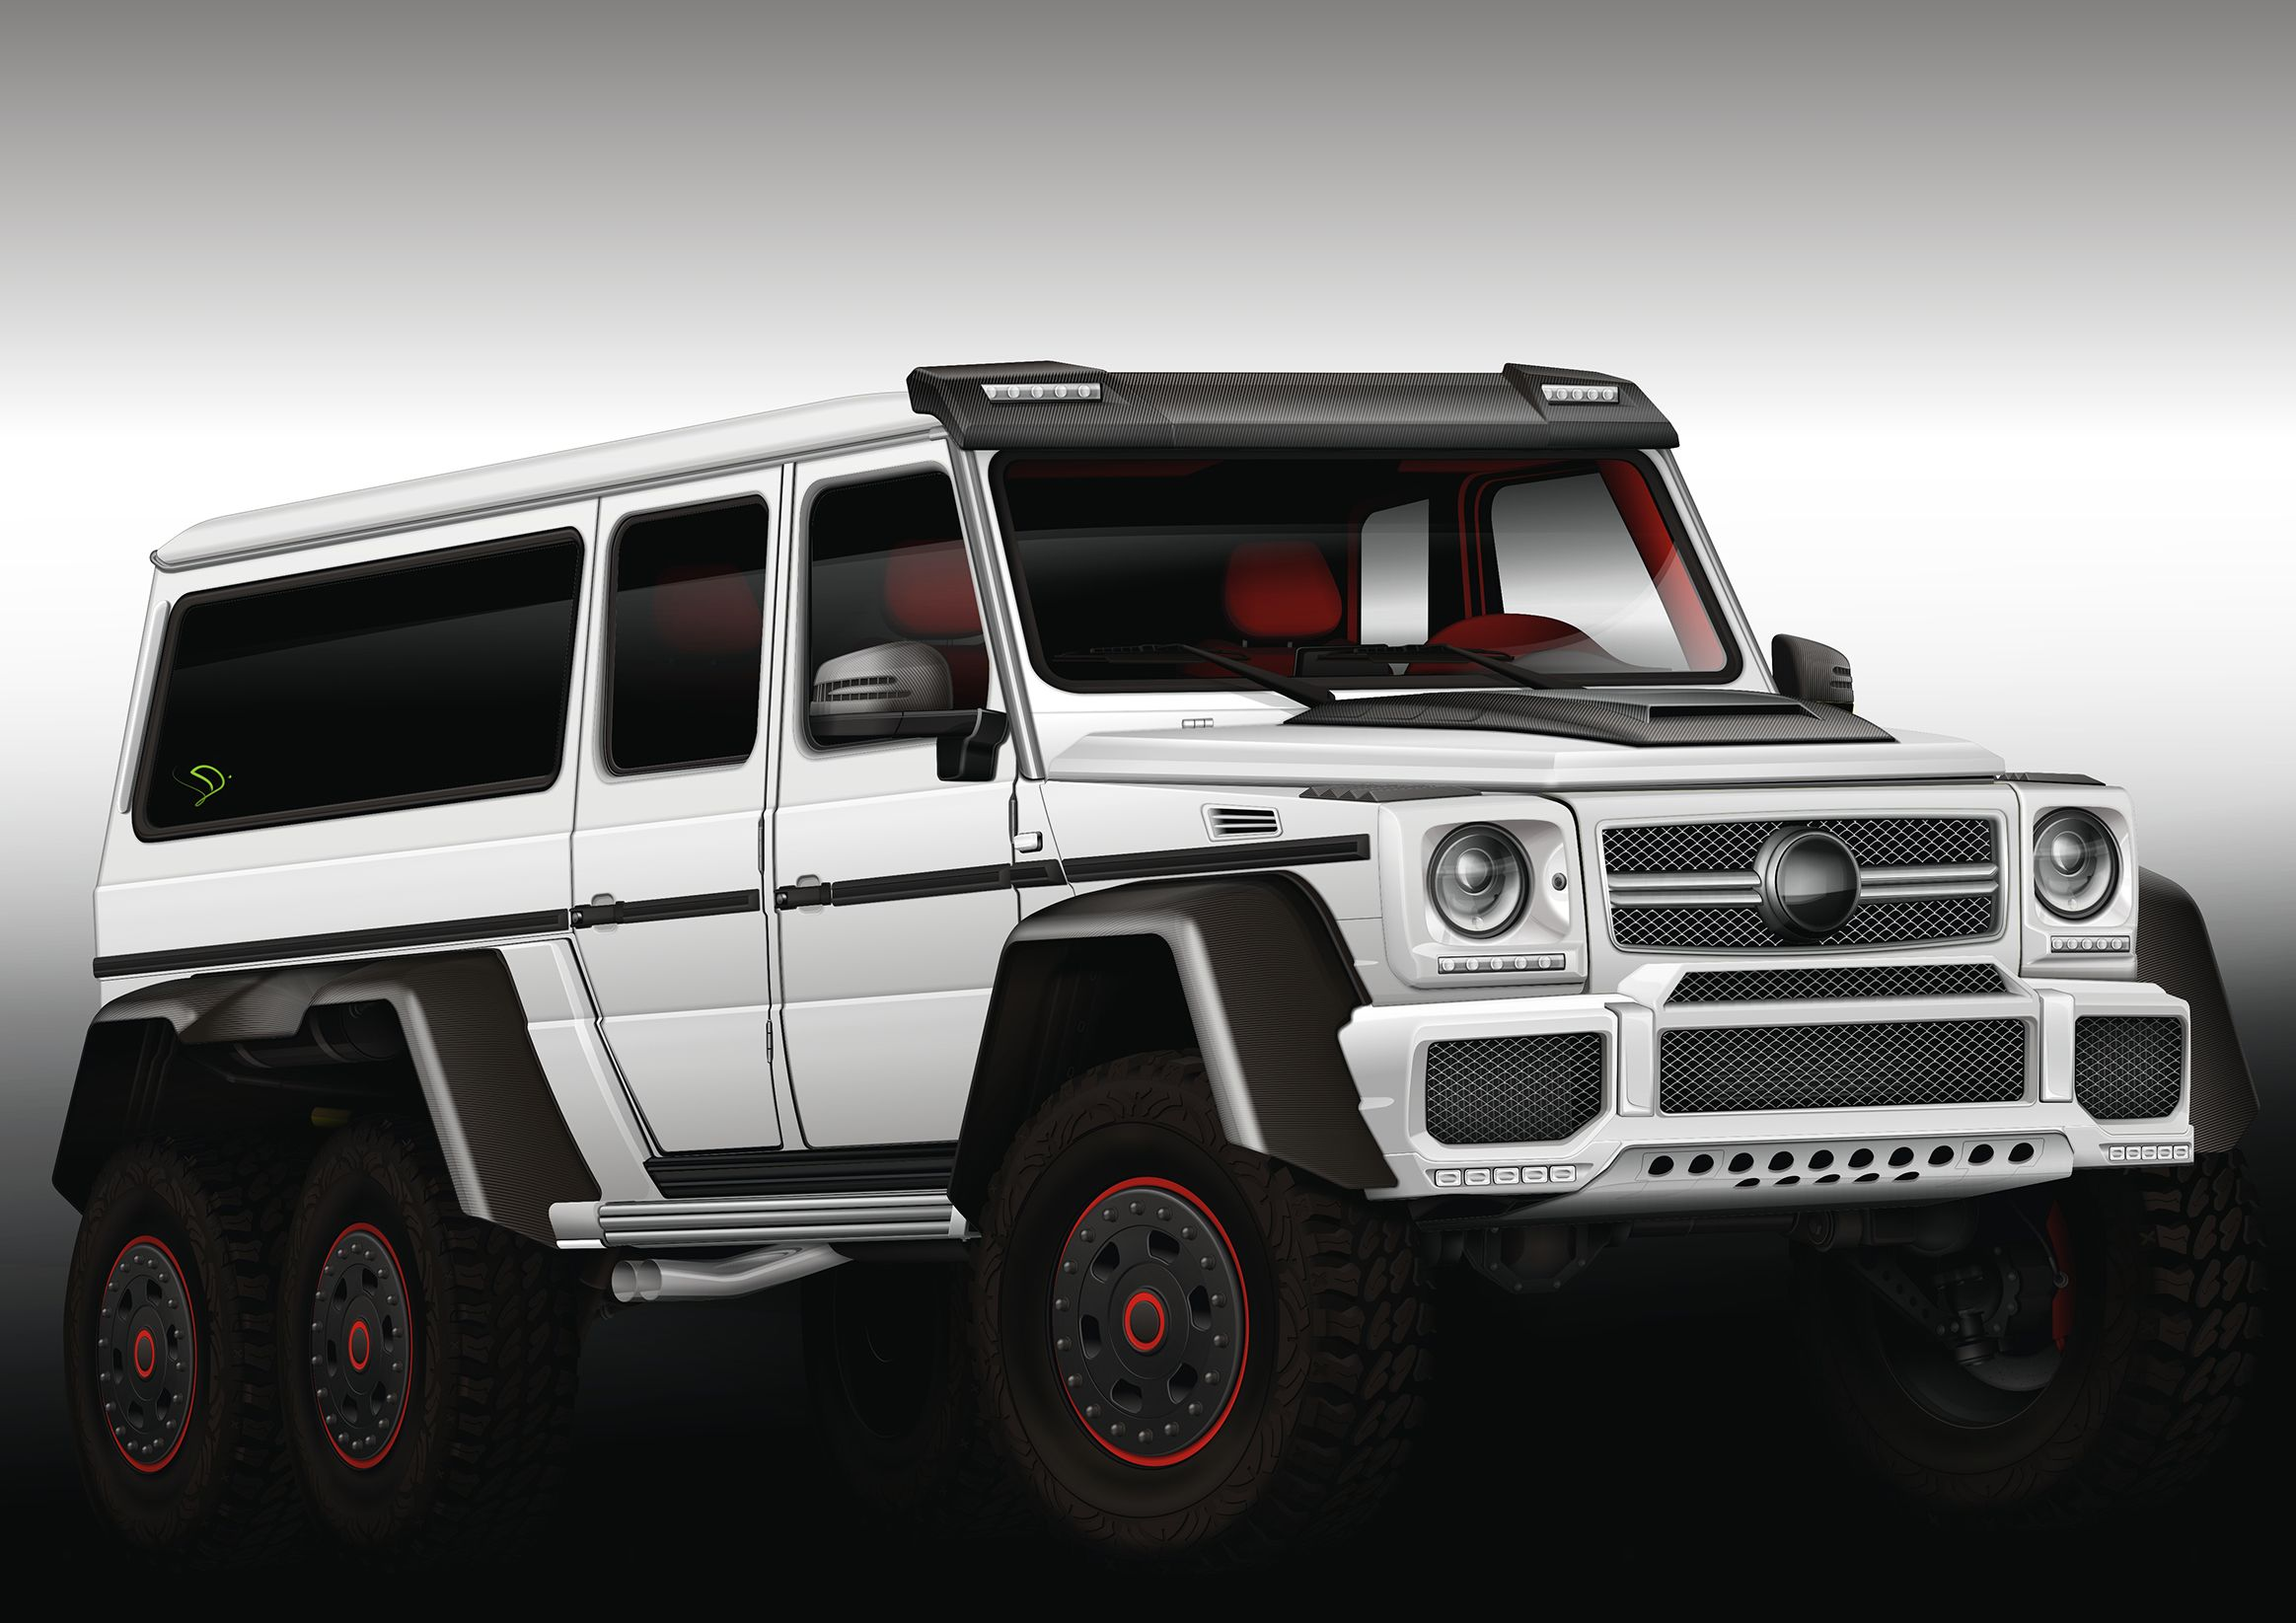 Mercedes Benz G63 AMG 6x6 Full Vector